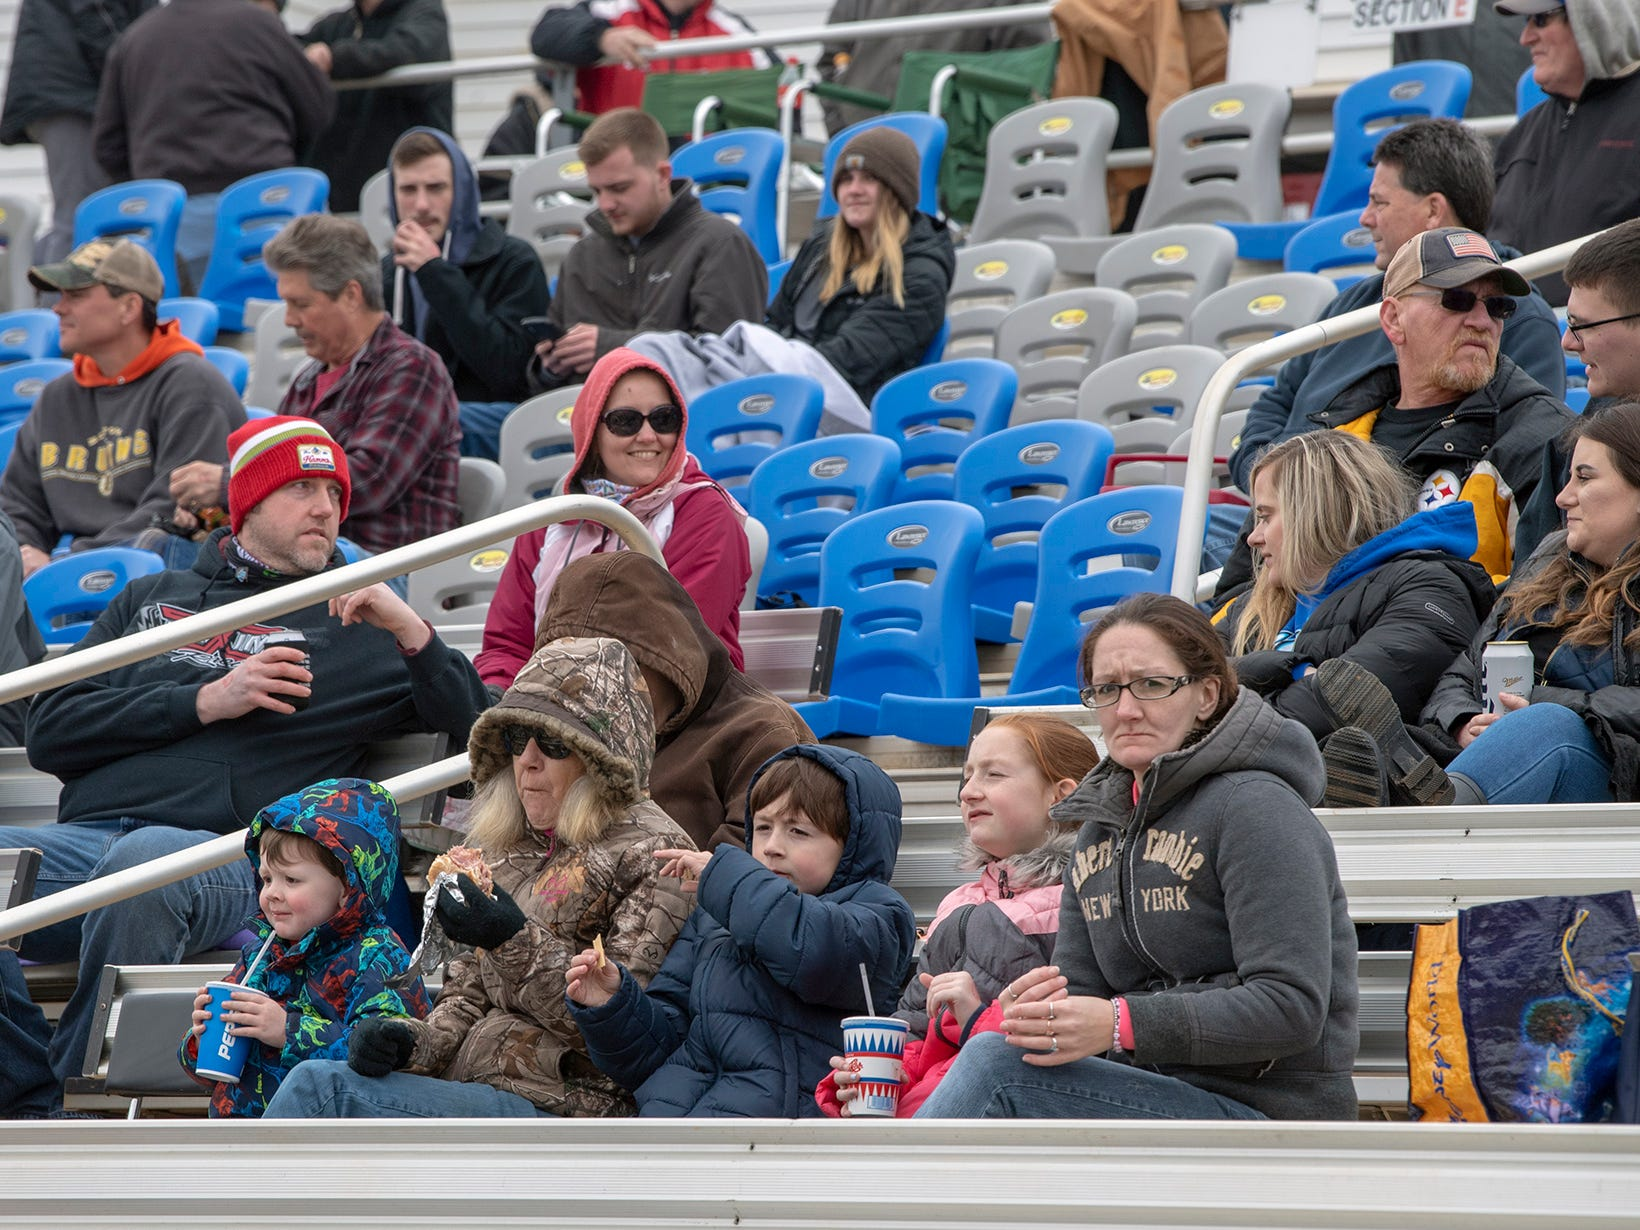 Fans wait for the race to begin during the Lincoln Speedway Ice Breaker 30 on Sunday near Abbottstown.